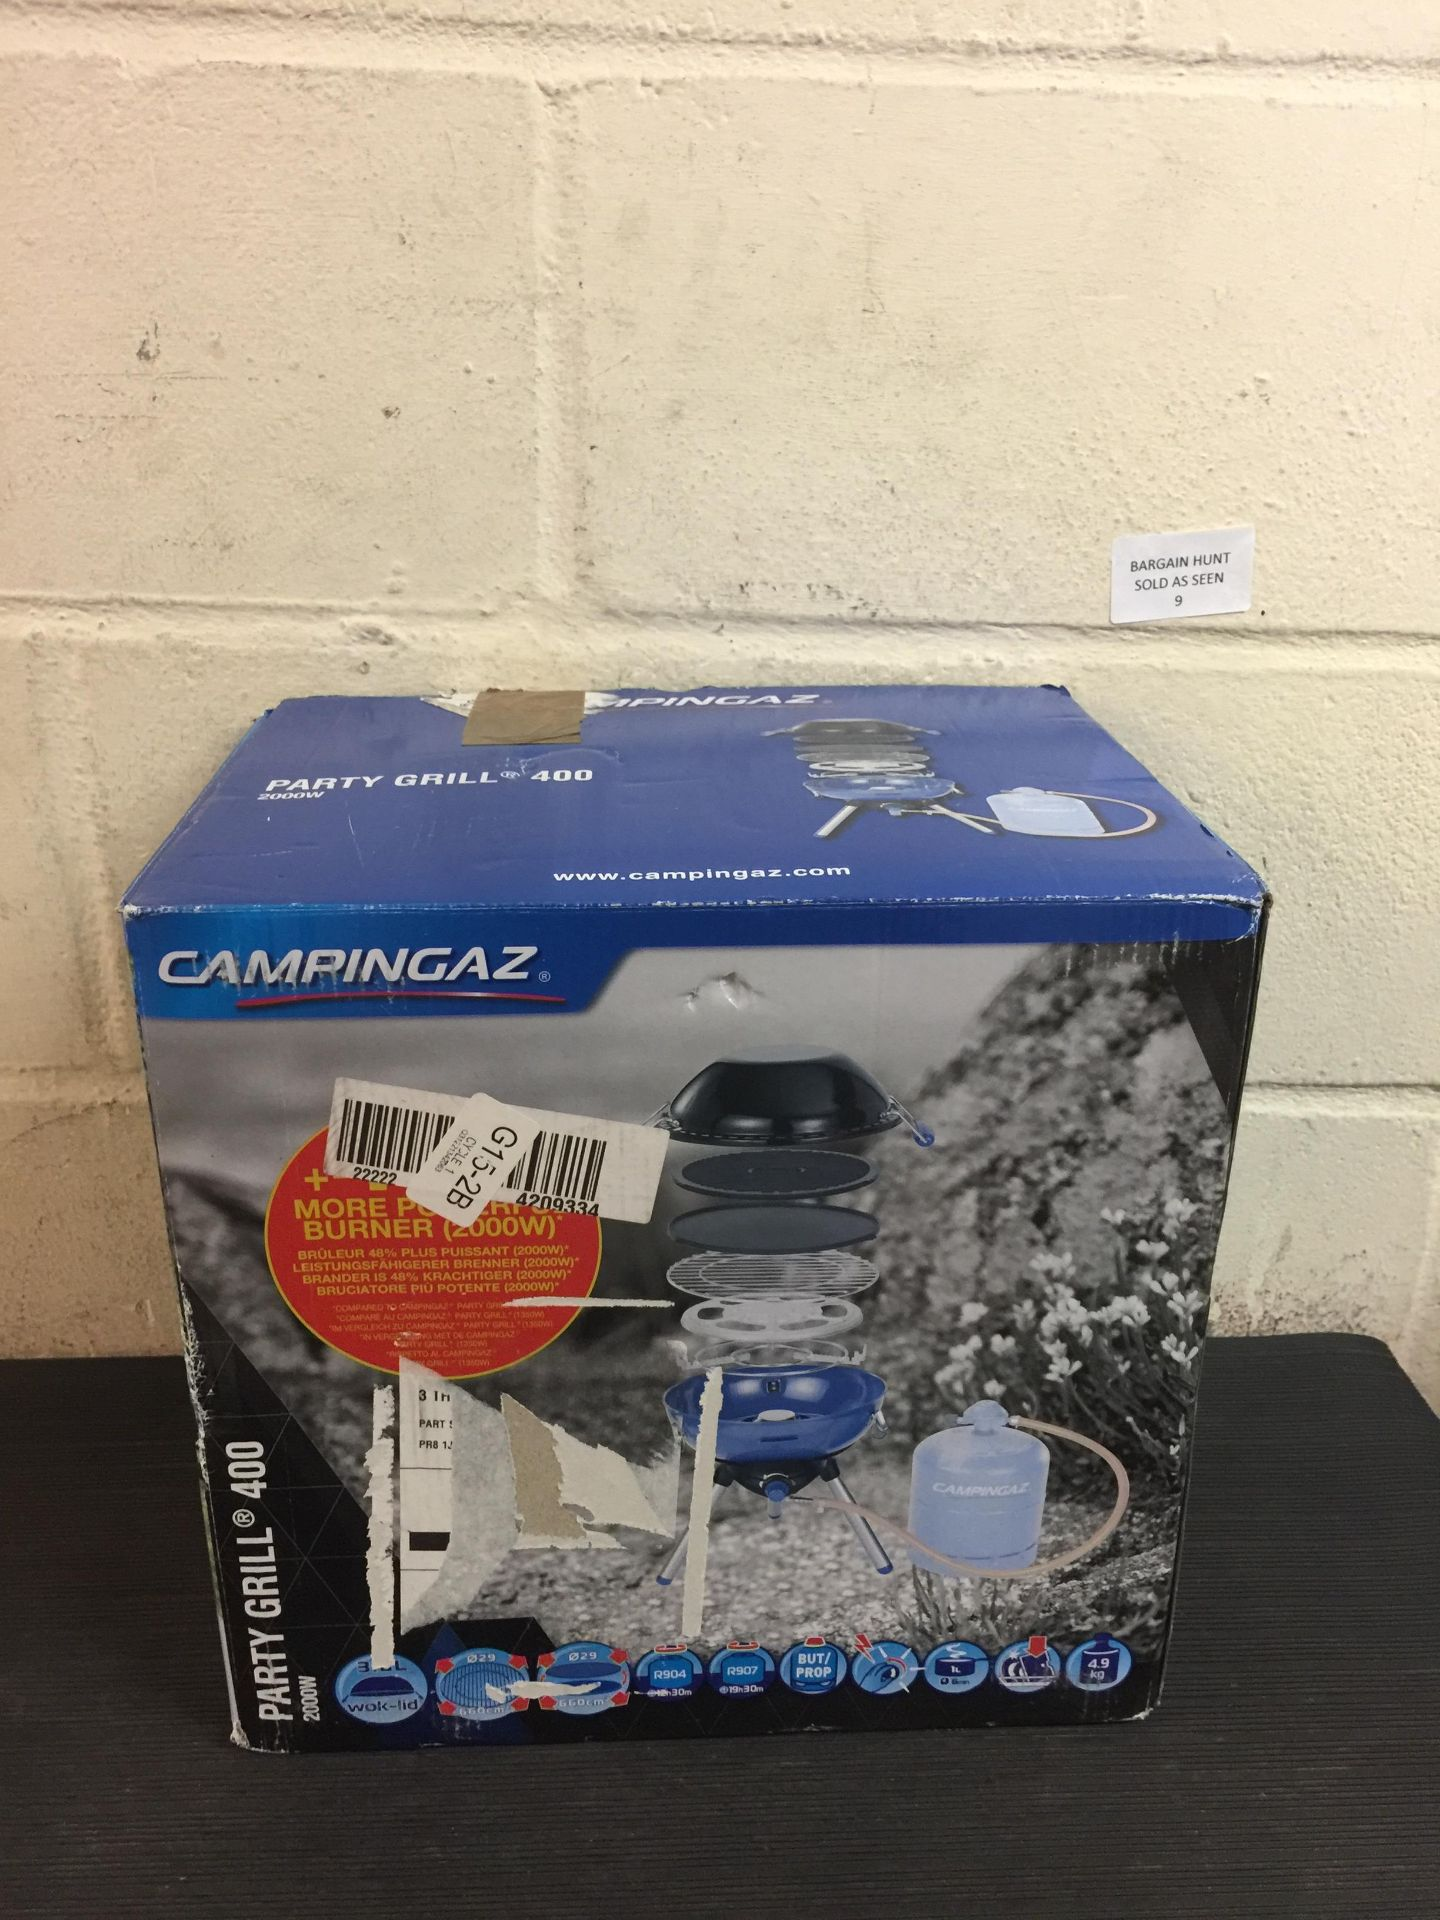 Lot 9 - Campingaz Party Grill 400 Camping Stove, All in One portable Camping BBQ RRP £86.99